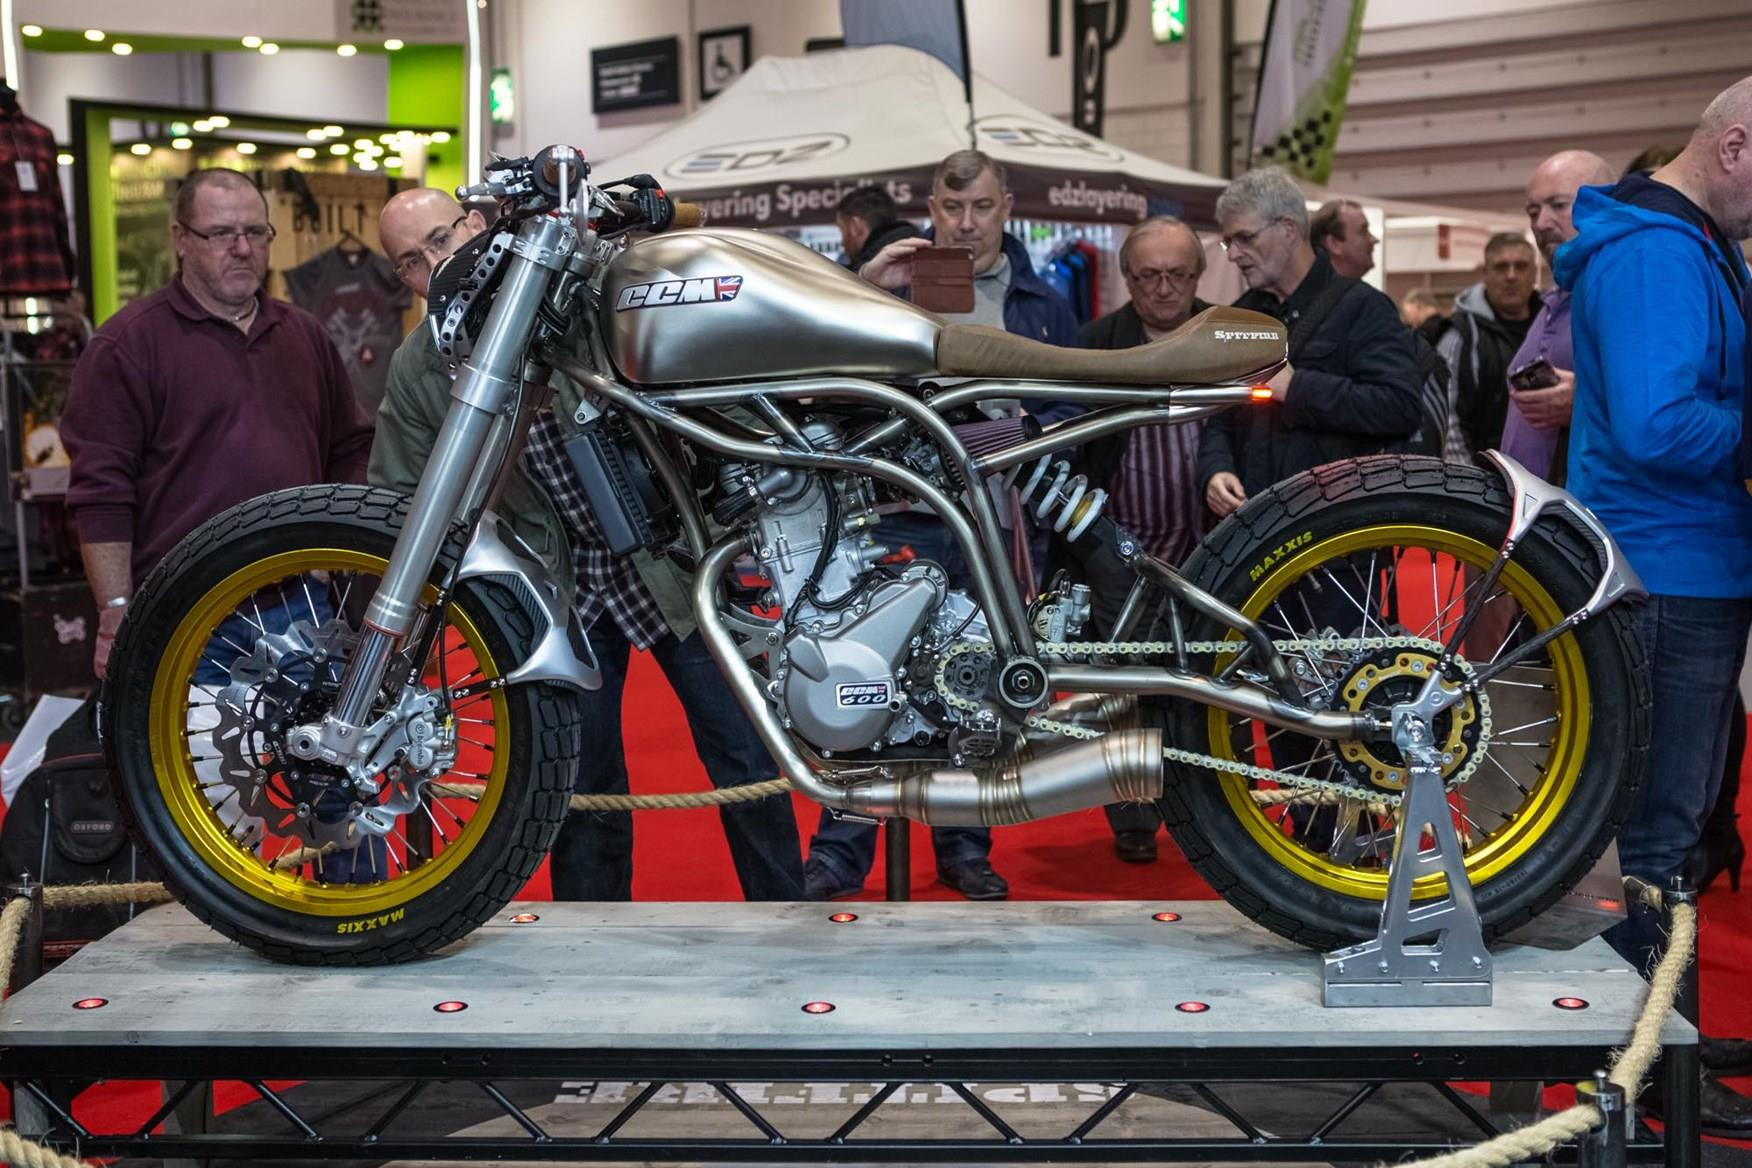 The CCM Spitfire at Motorcycle Live 2017